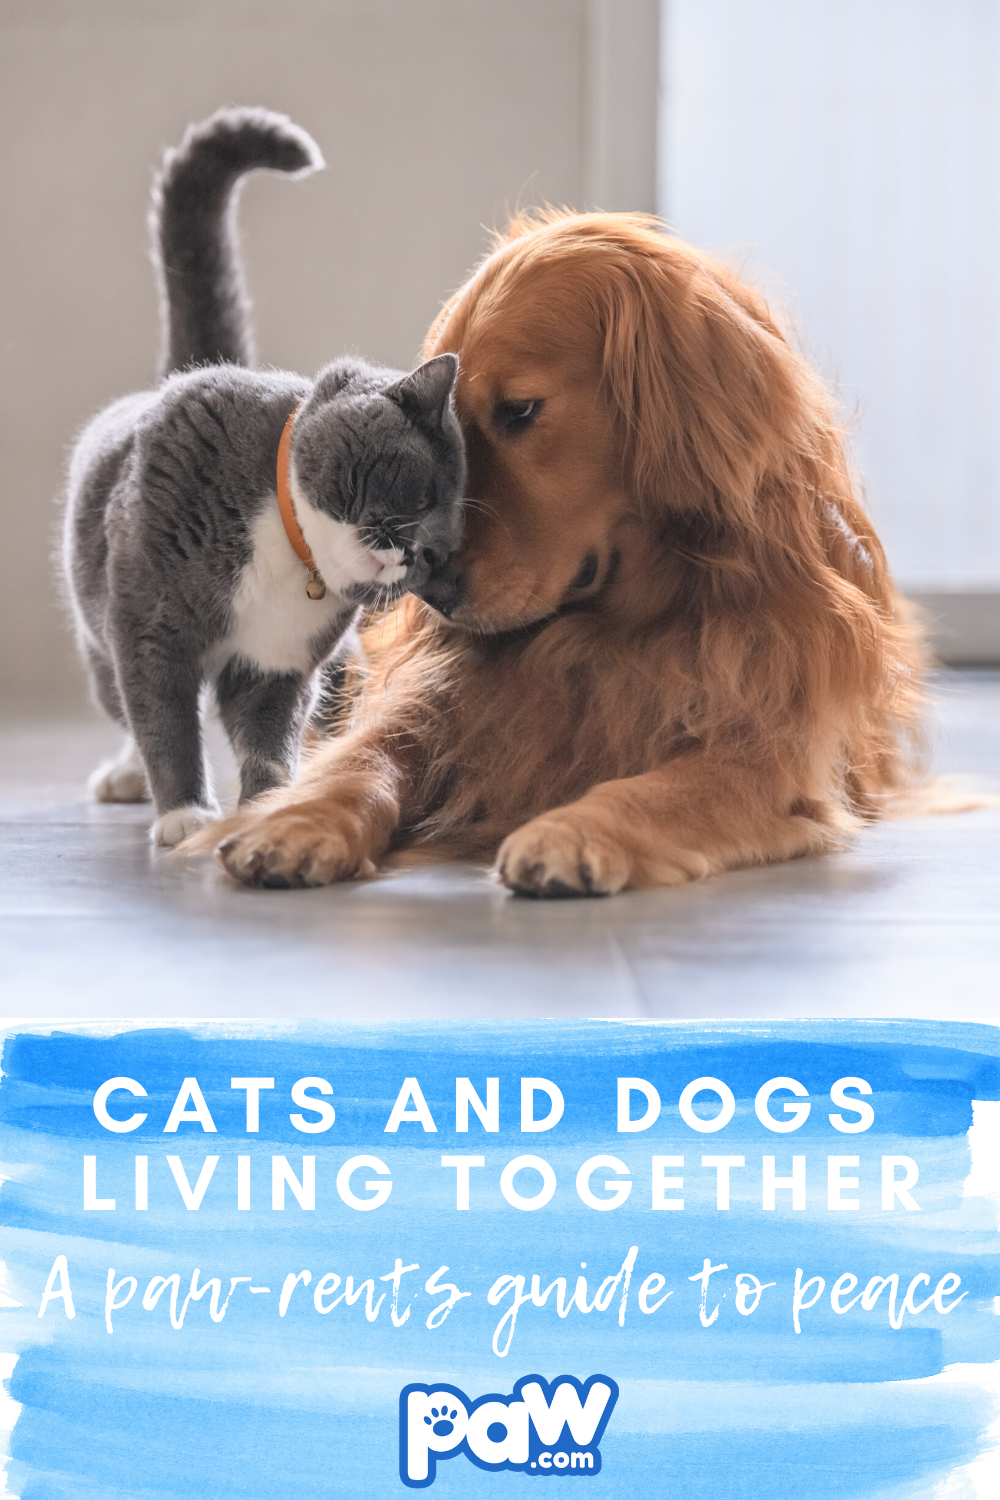 Cats And Dogs Living Together A Pawrent S Guide To Peace In 2020 Dog Cat Dogs Cats